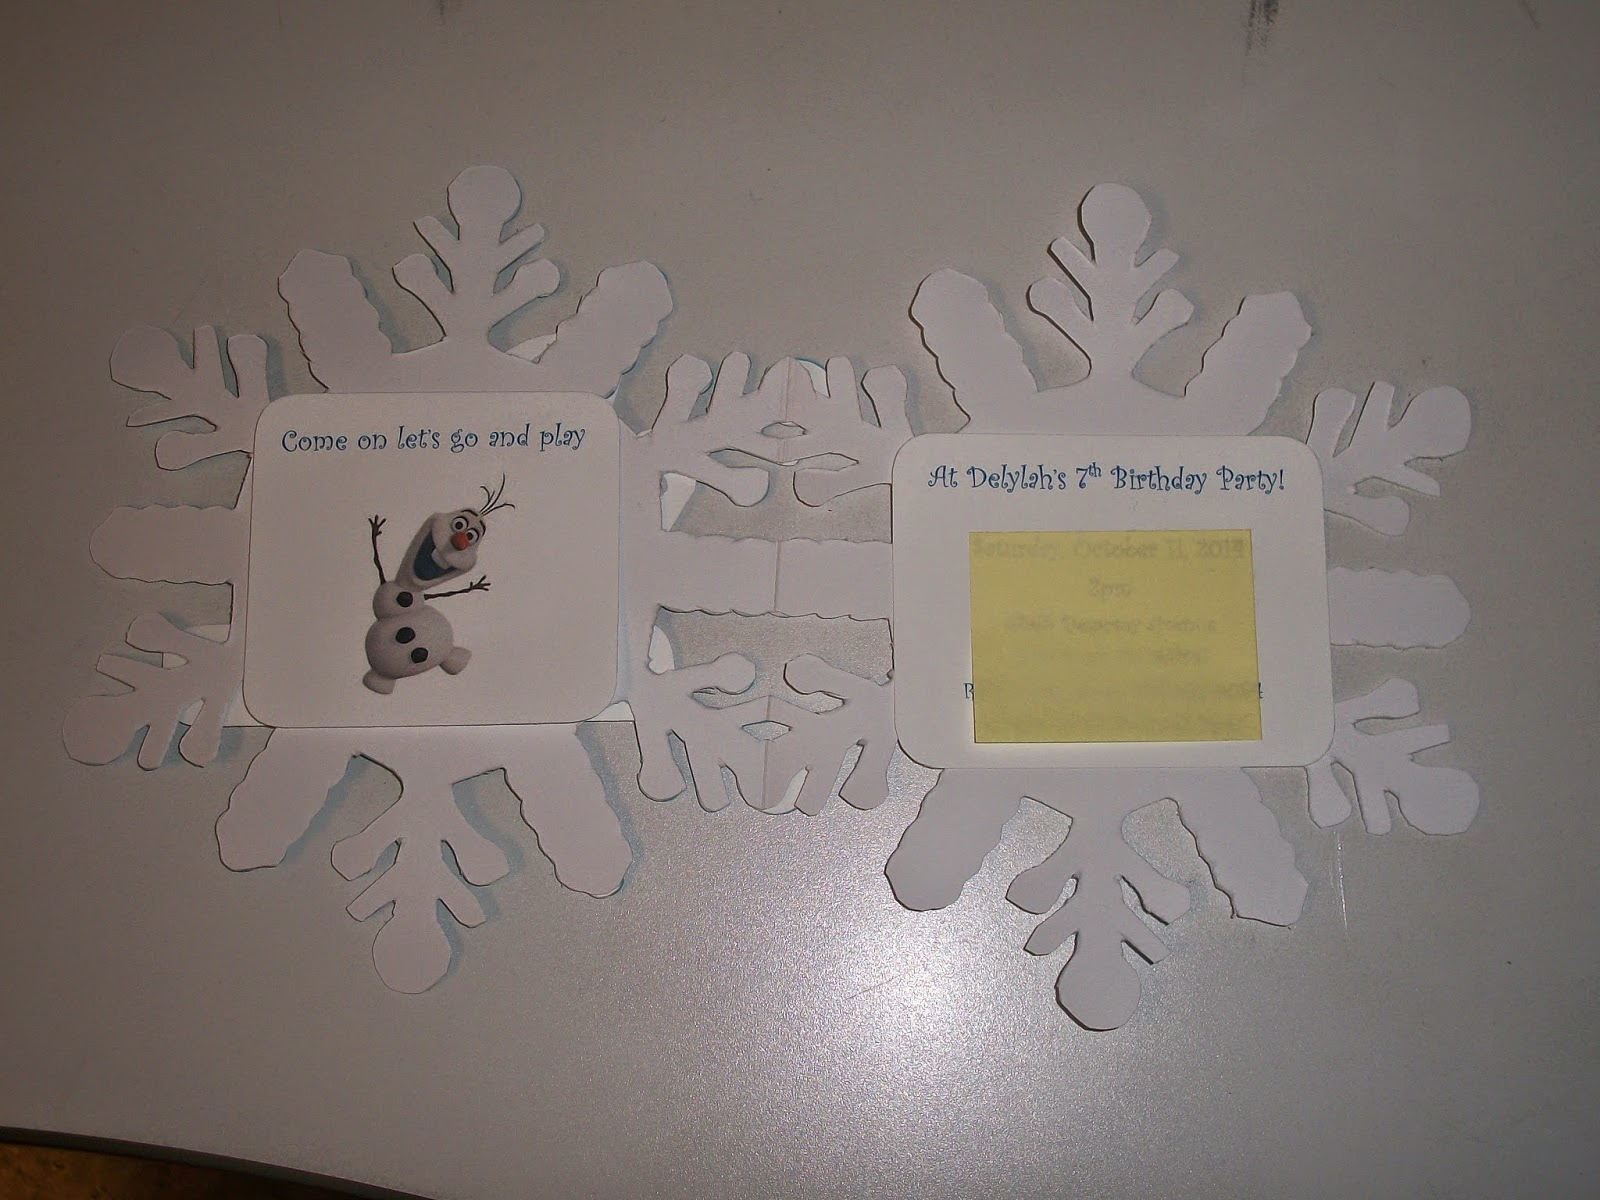 Inside of card has party information